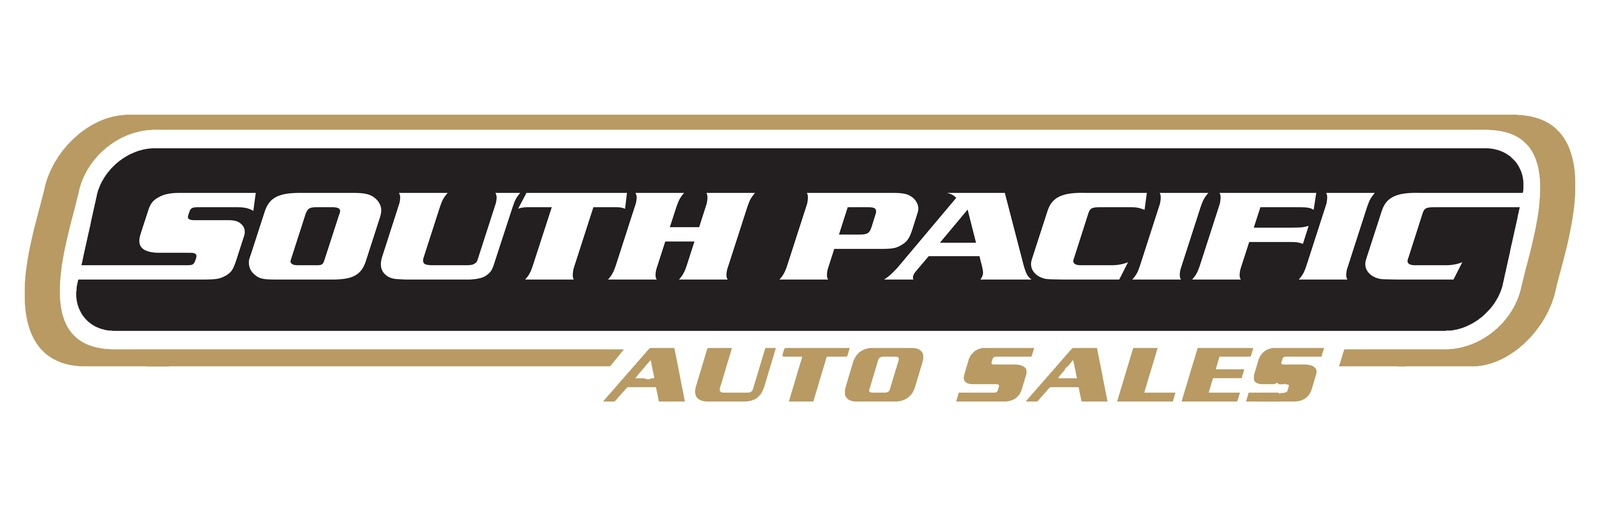 South Pacific Auto Sales Albany Or Read Consumer Reviews Browse